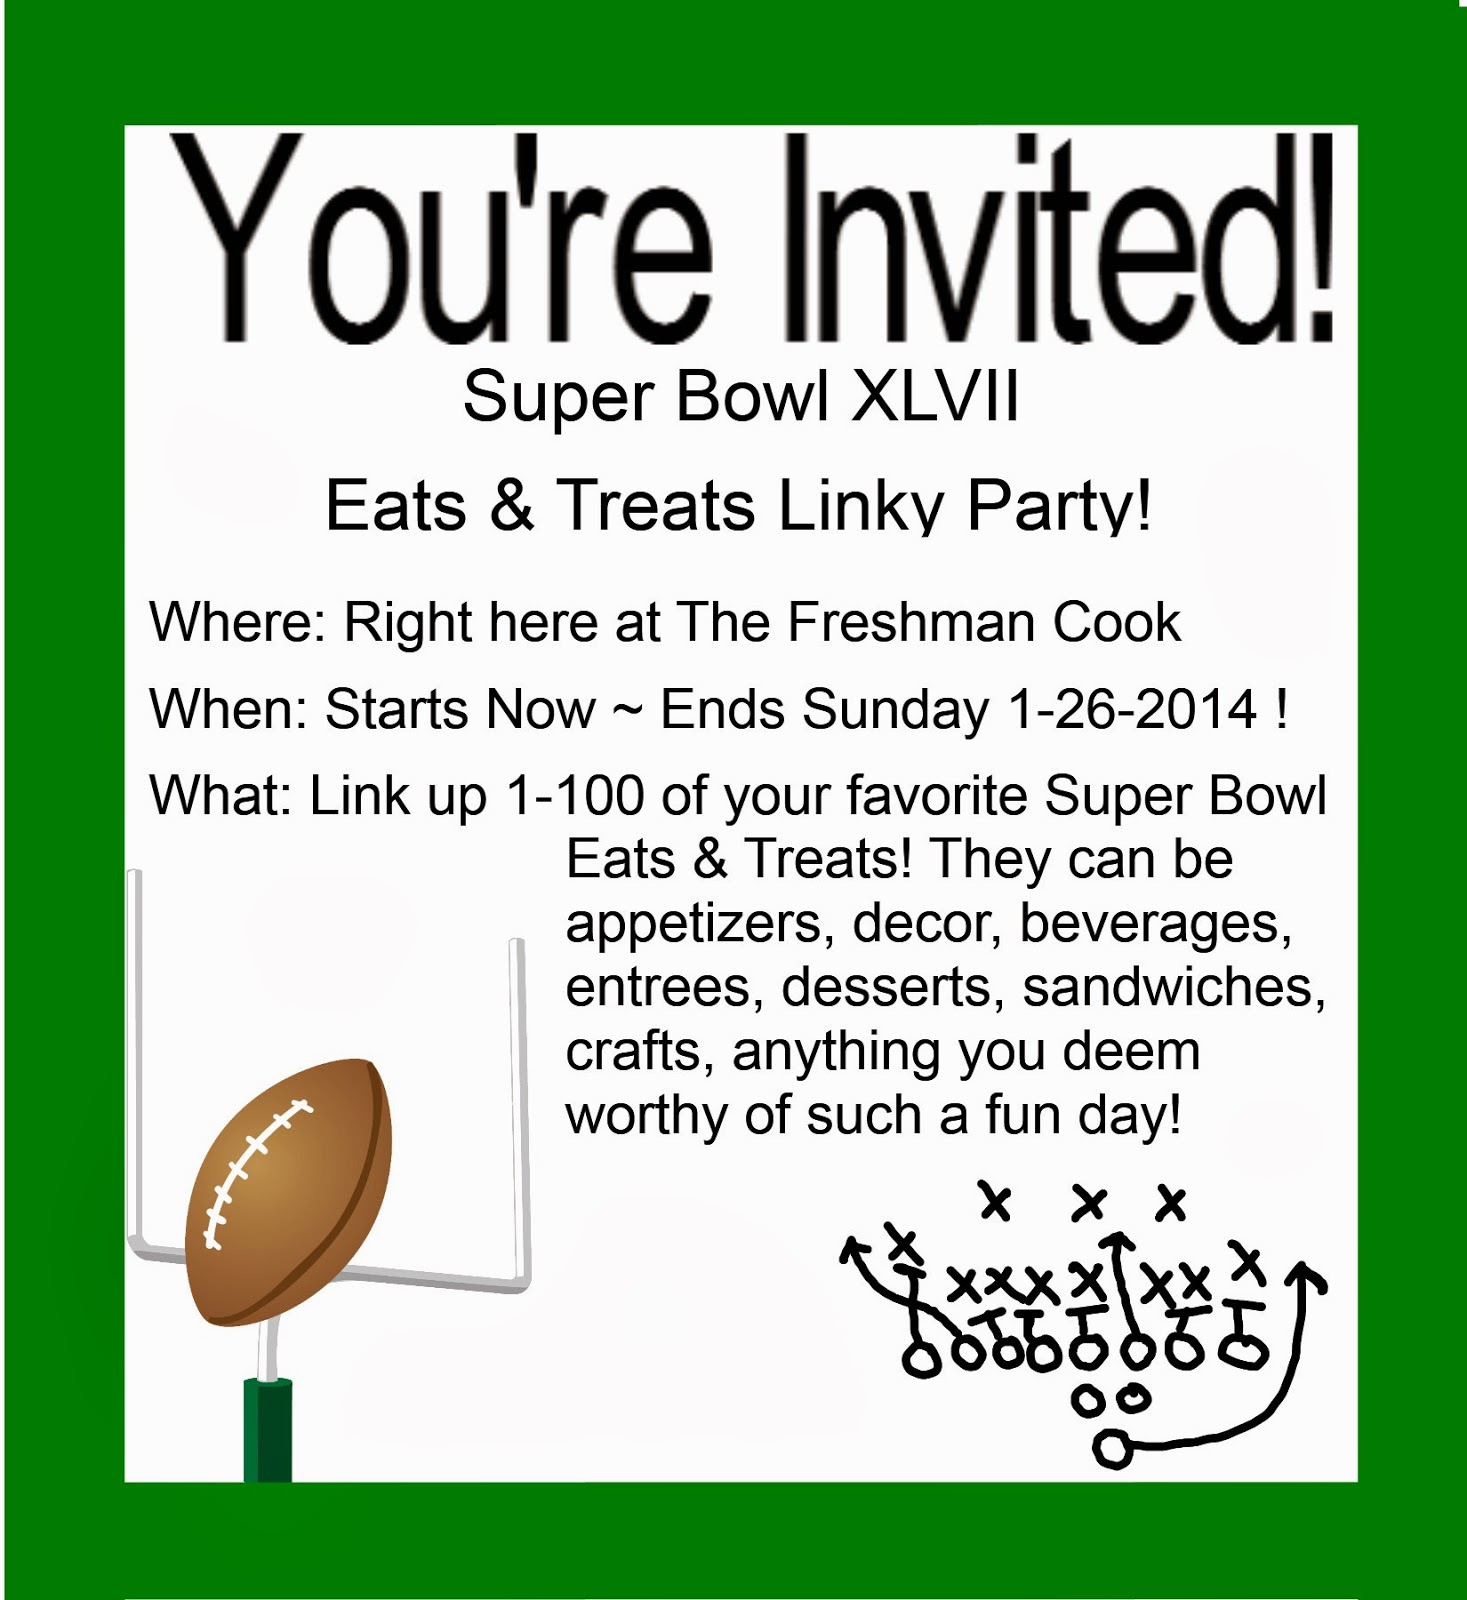 The Freshman Cook: Super Bowl Linky Party